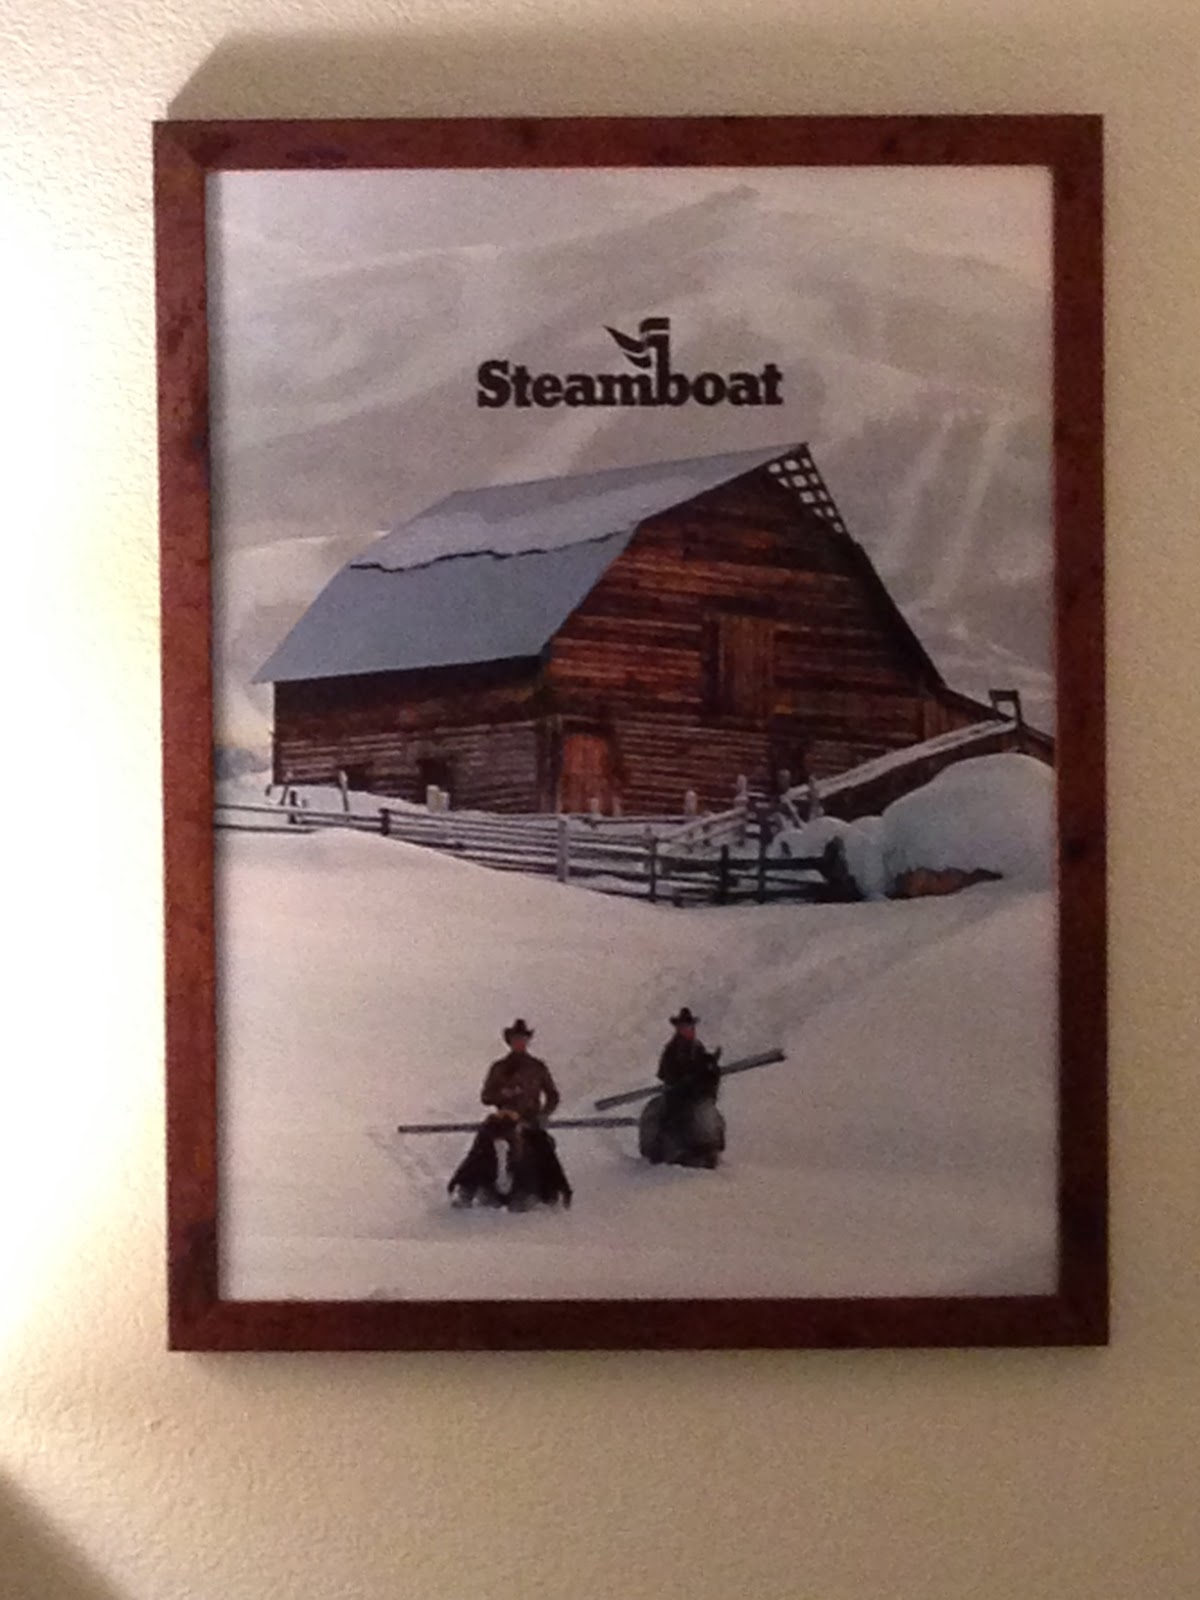 steamboat logo